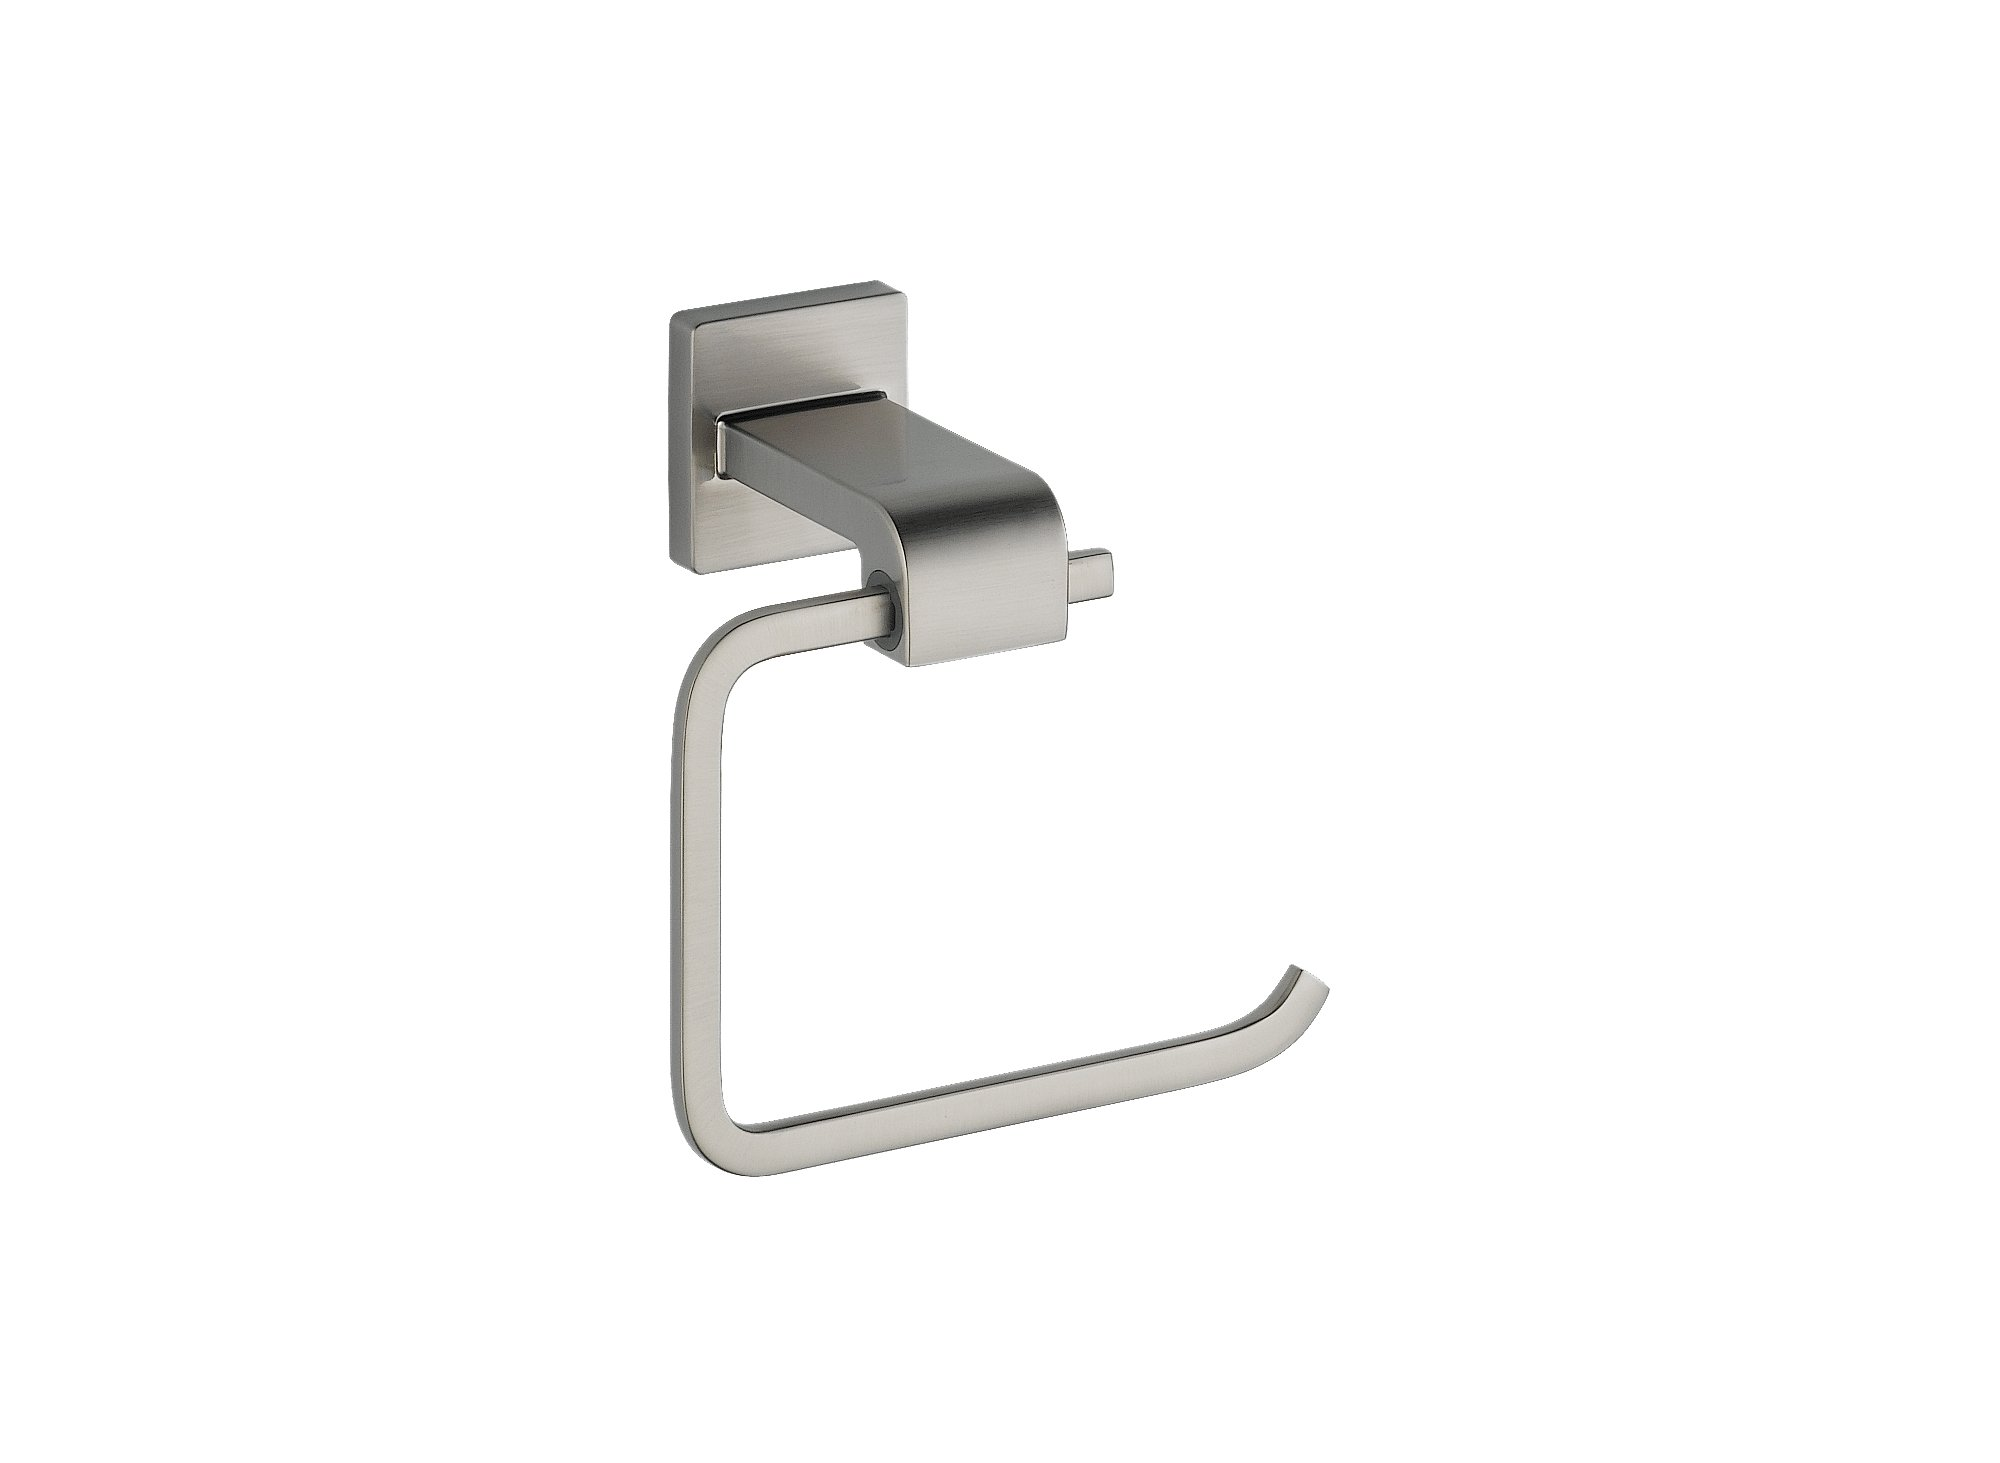 Delta 77550-SS Ara Single Post Toilet Paper Holder in Brilliance, Stainless Steel by DELTA FAUCET